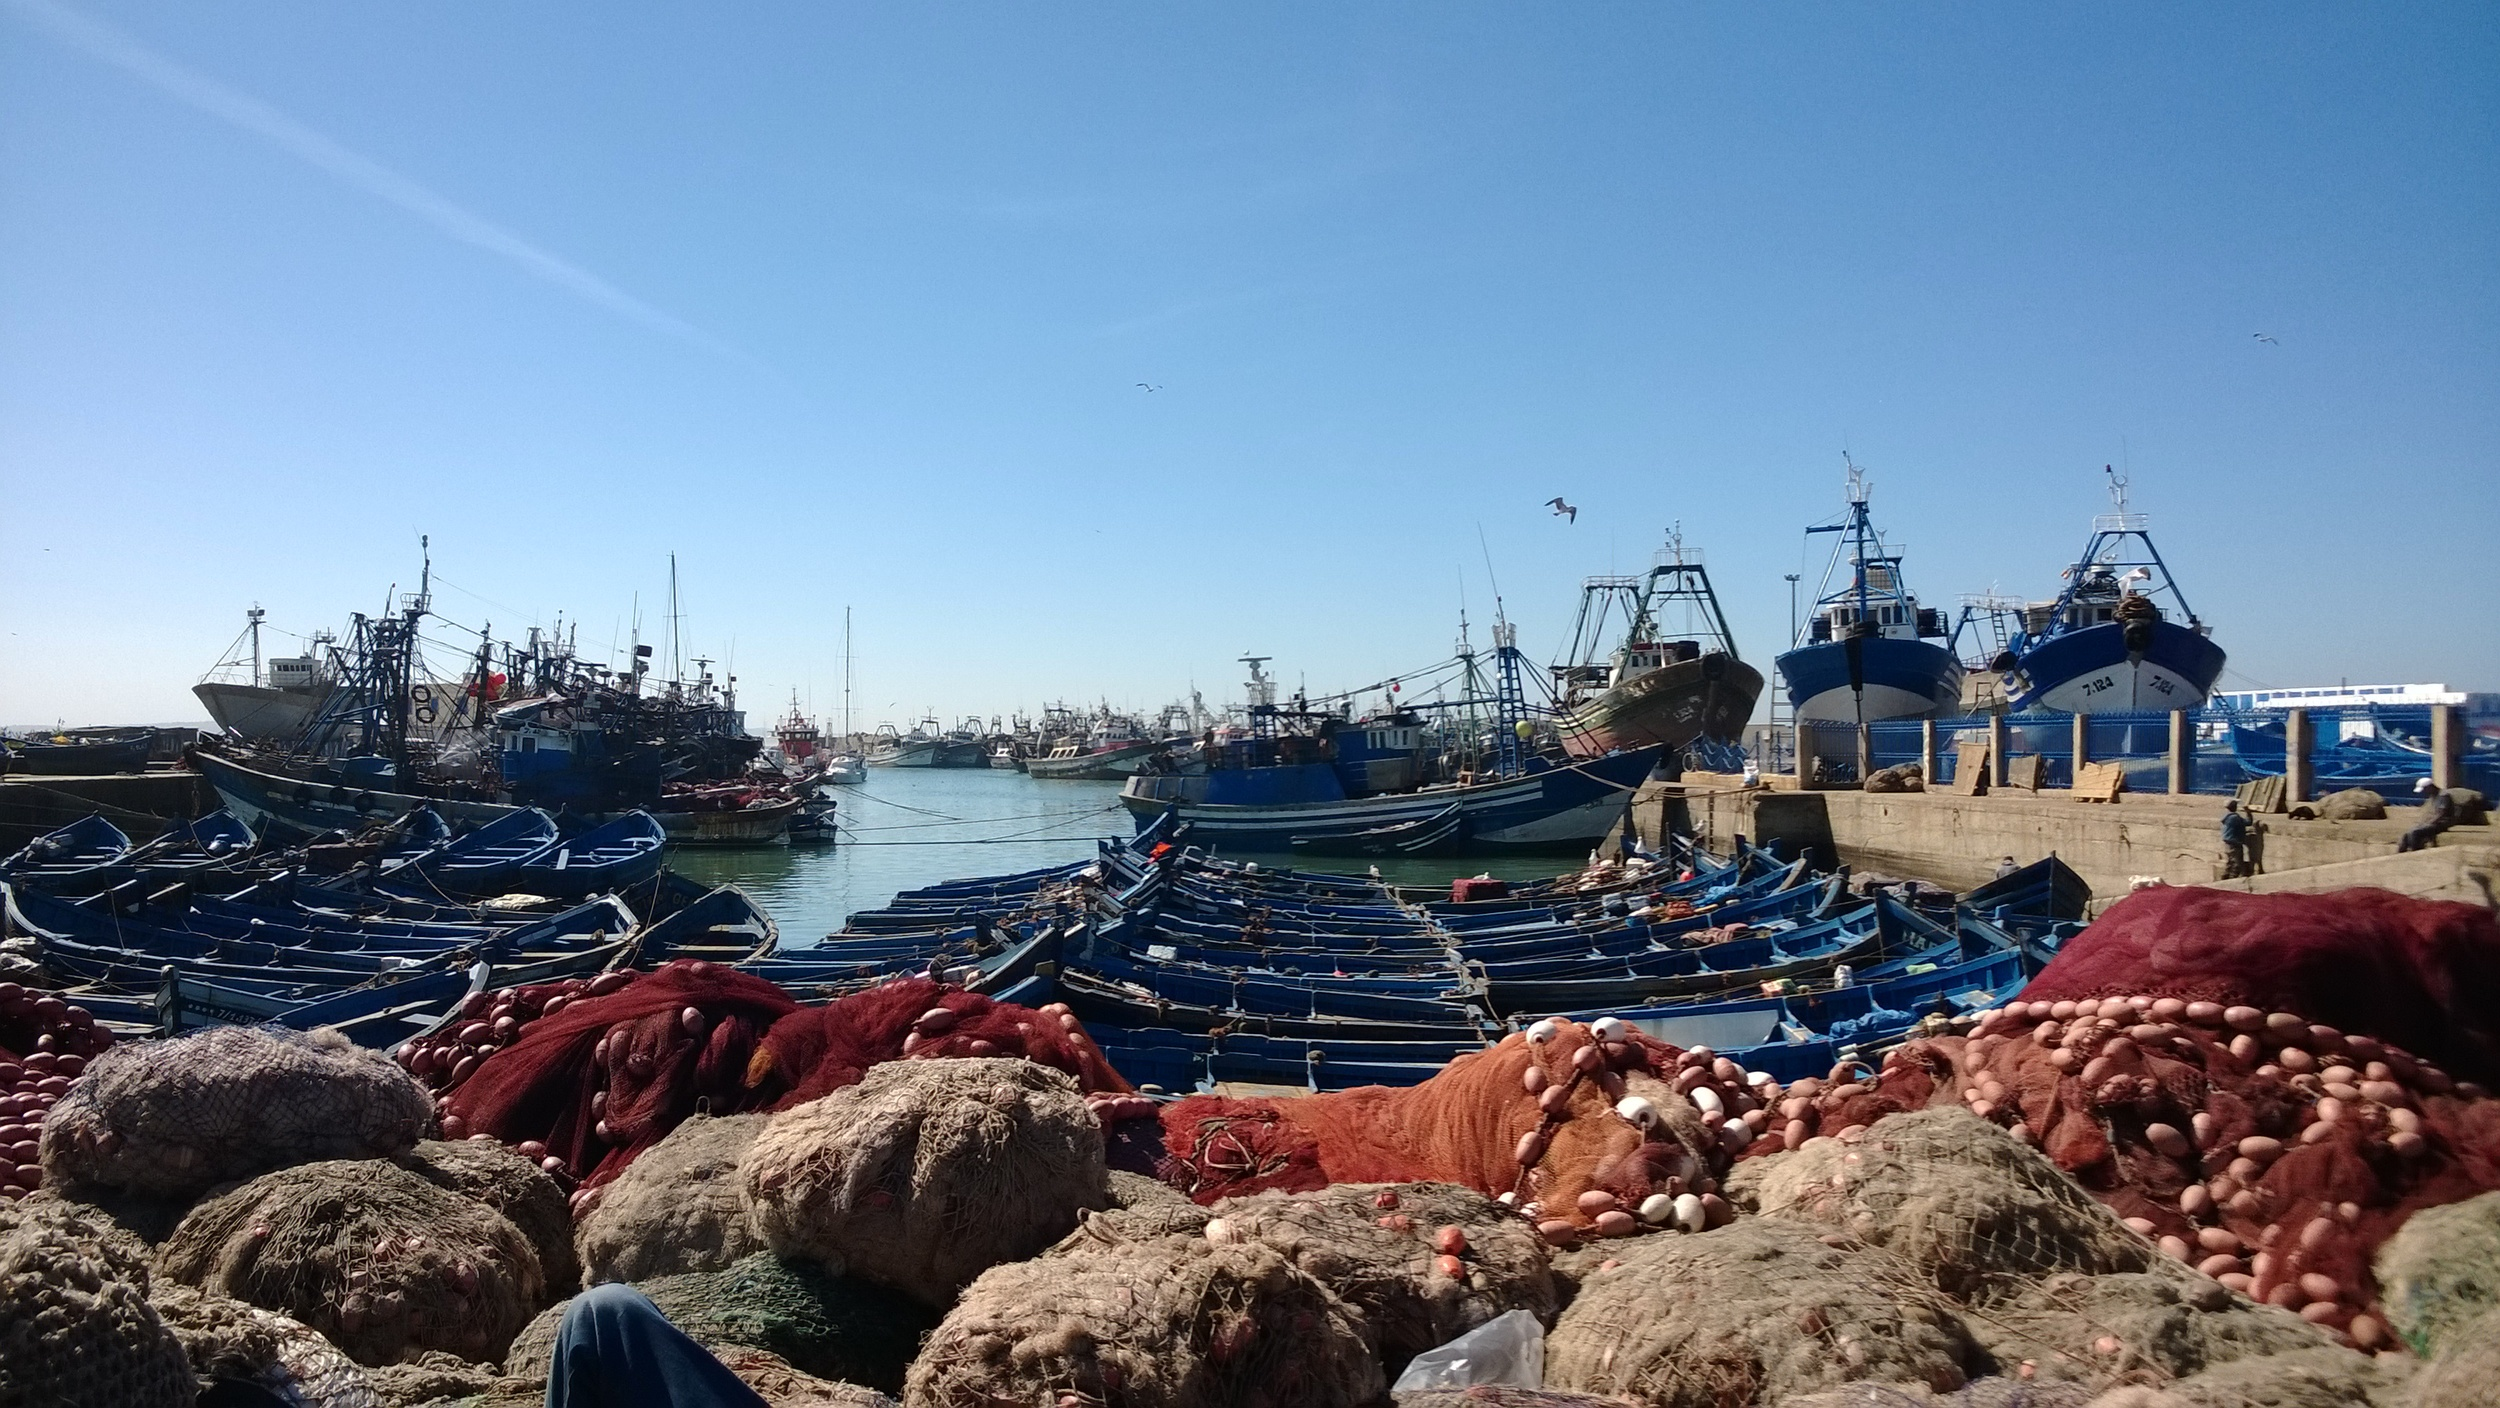 Fish boats at ESSAOUIRA